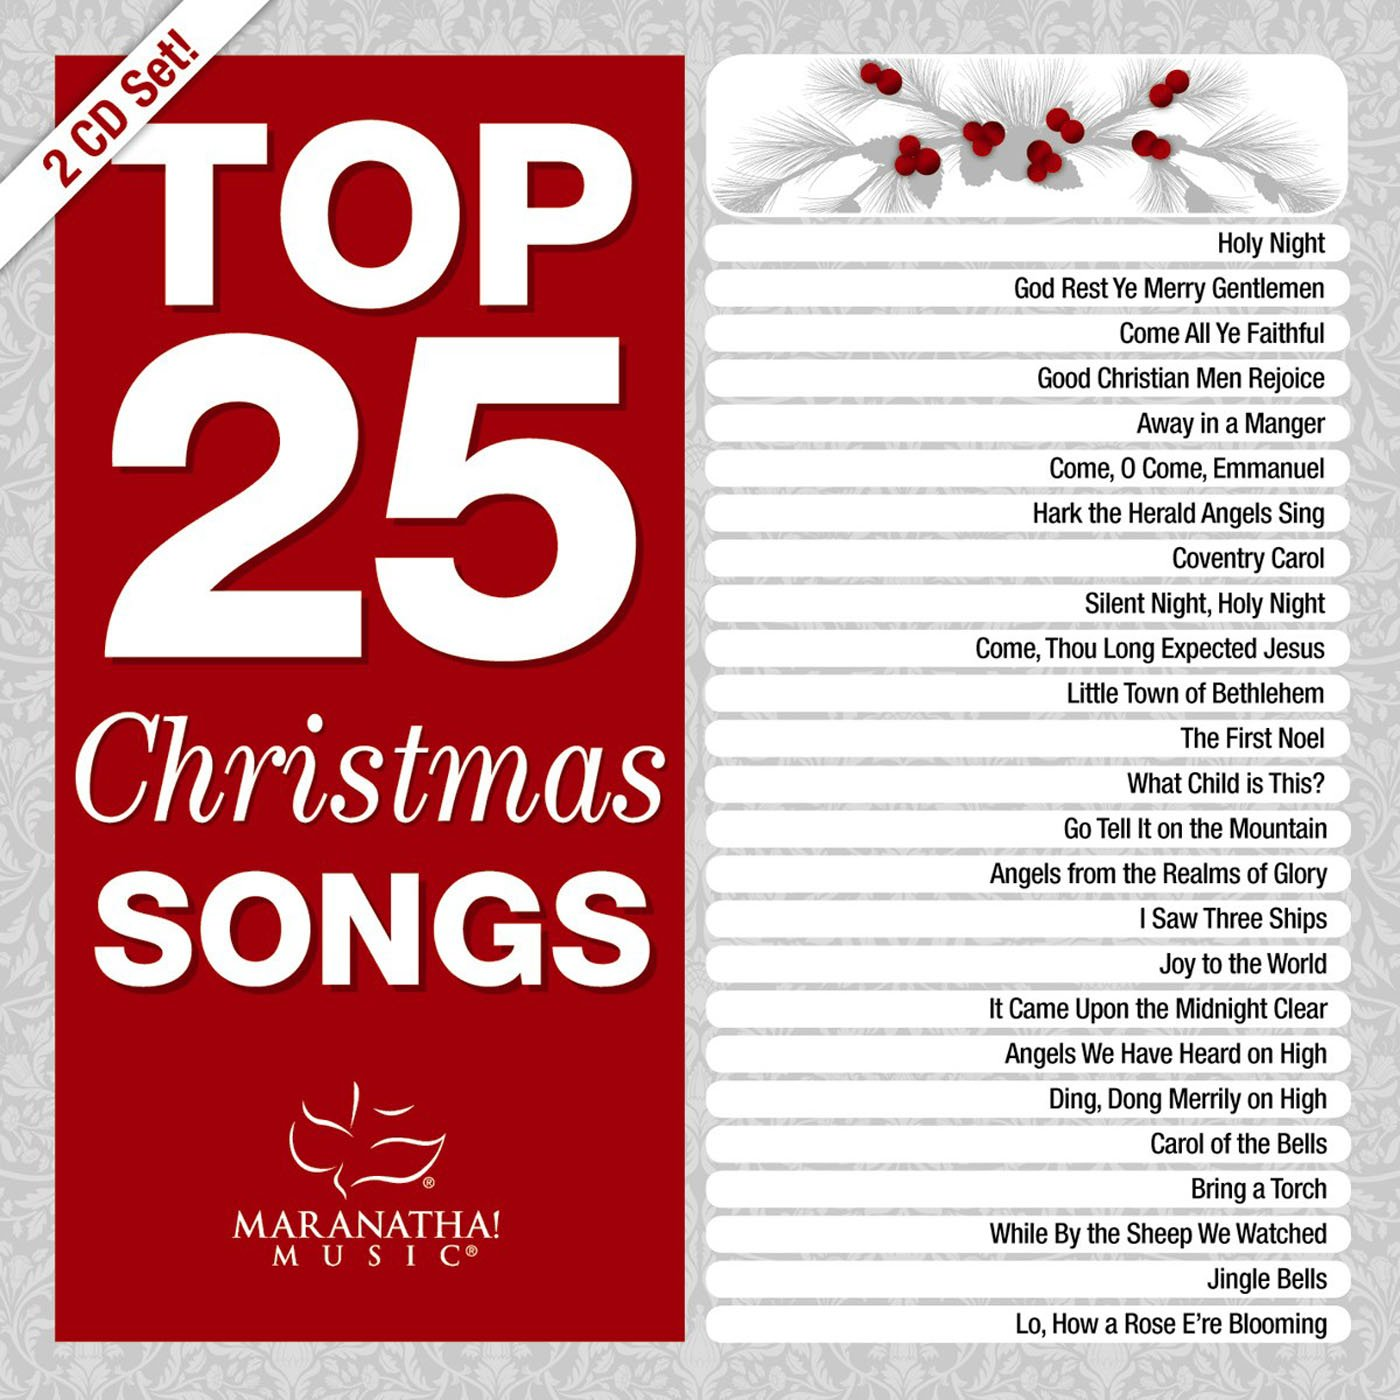 top 10 christmas carols uk Yahoo uk & ireland answers sign in culture holidays christmas next top 10 christmas carols thought on the top ten politically correct christmas.